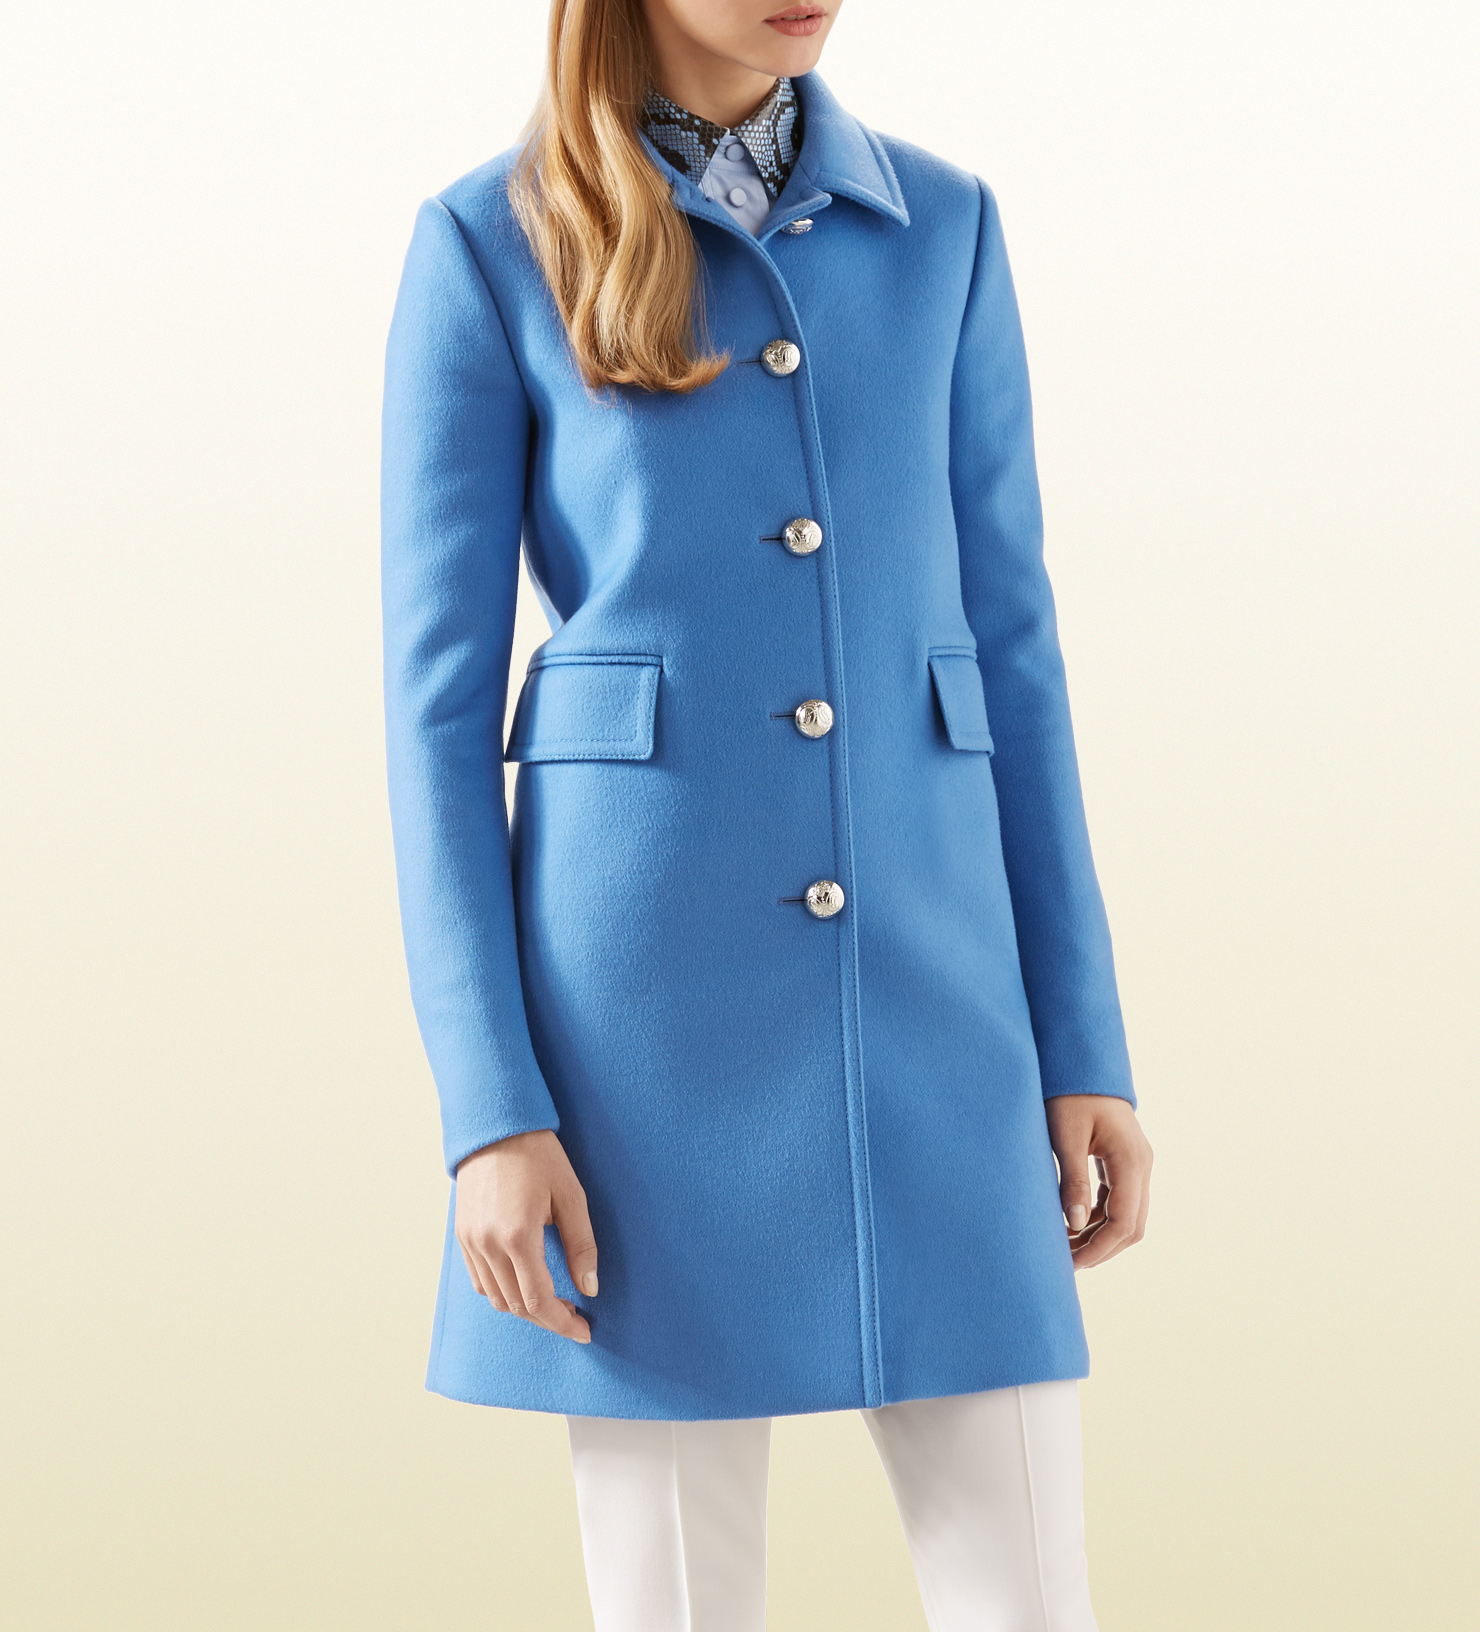 0d0d8da62 Gucci Blue Wool Coat in Blue - Lyst